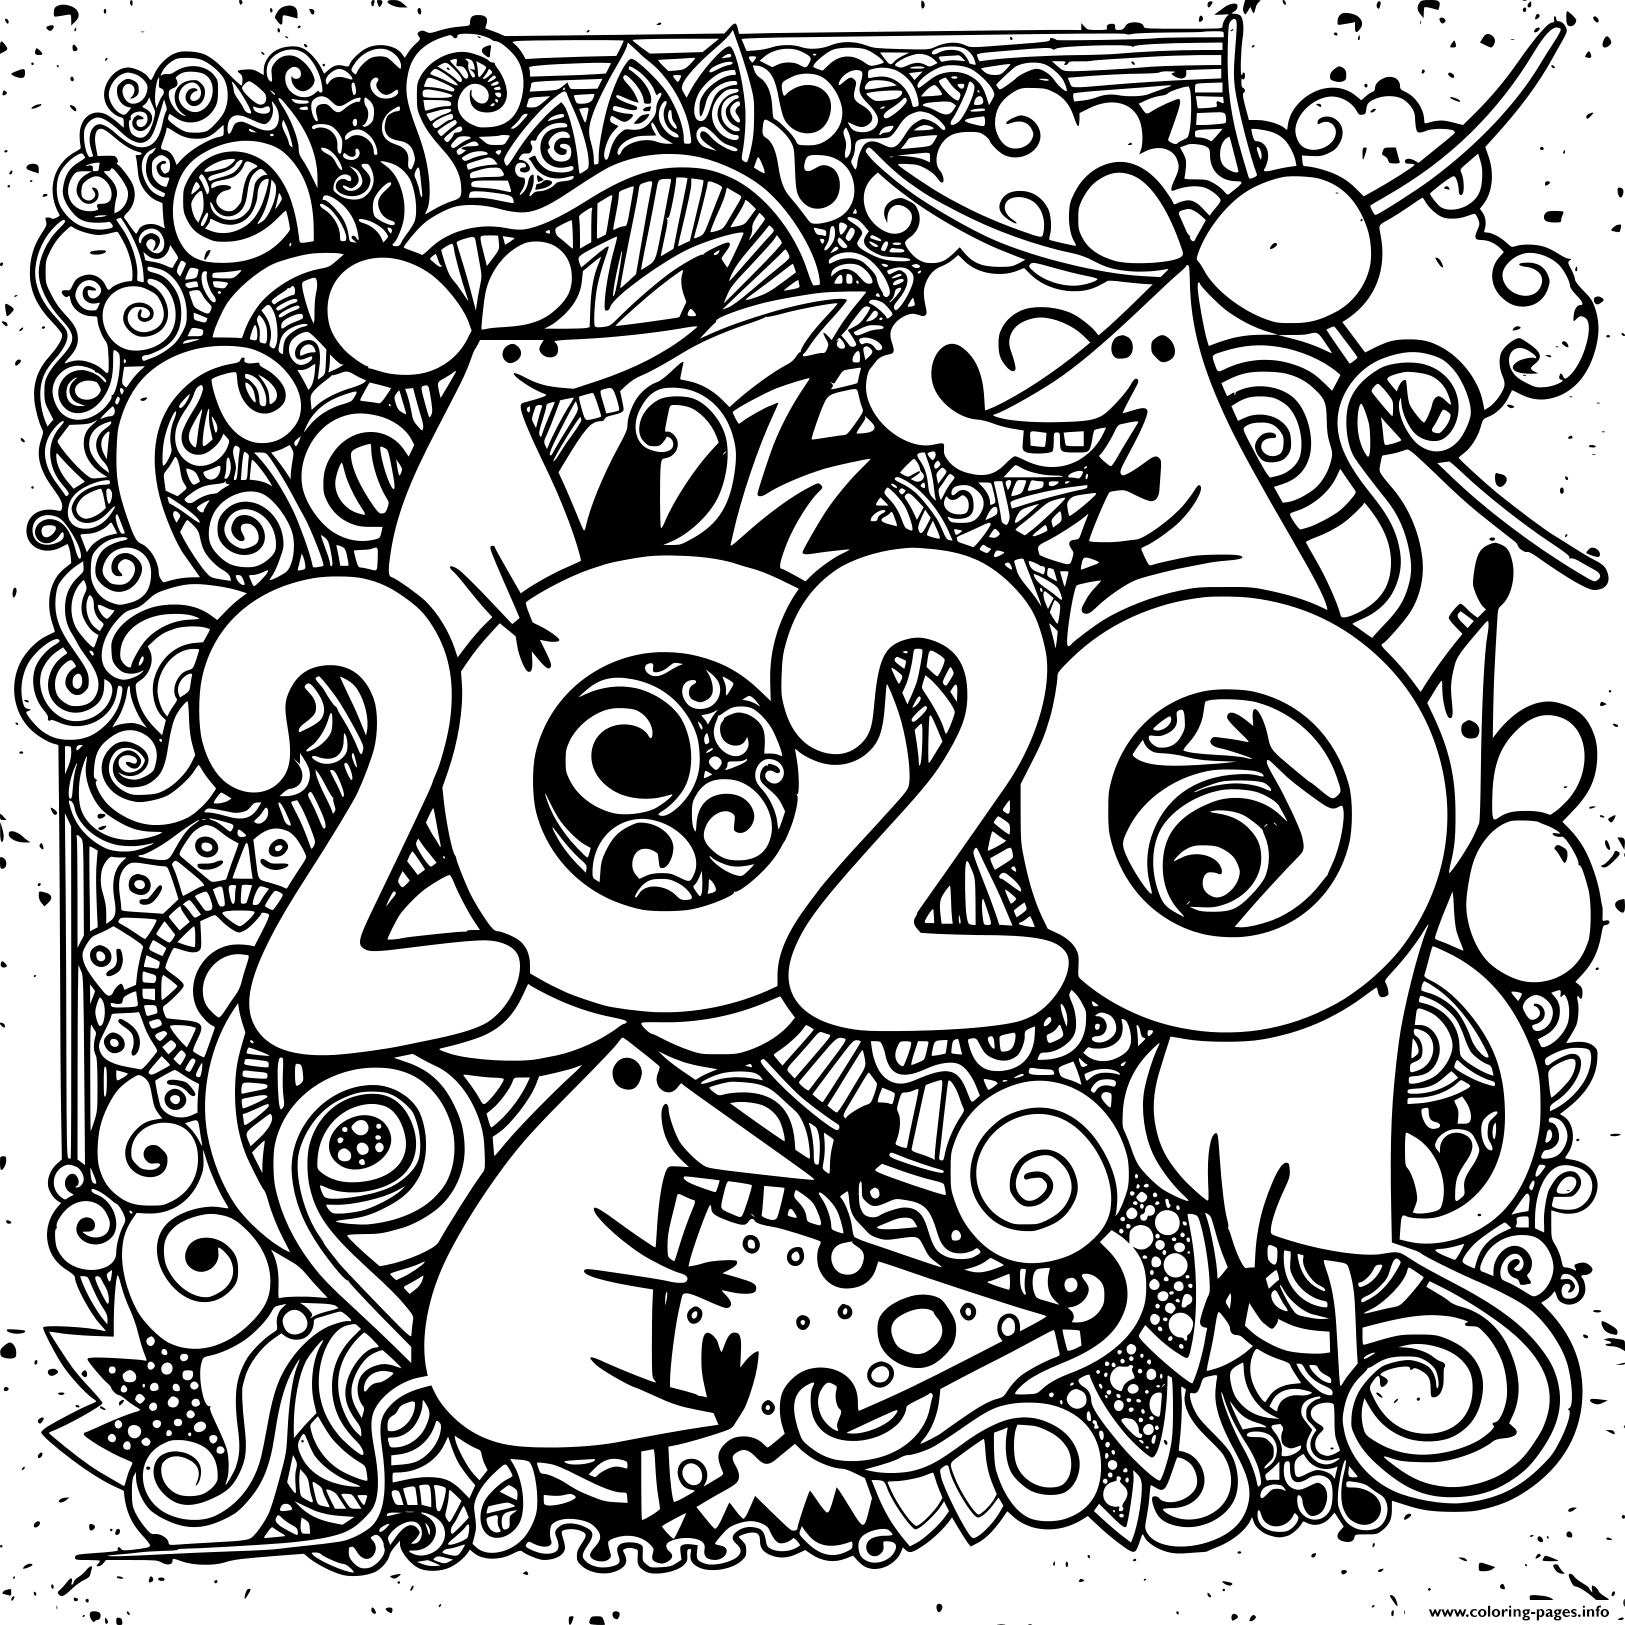 coloring page 2020 2020 coloring page by cookies and racecars teachers pay page coloring 2020